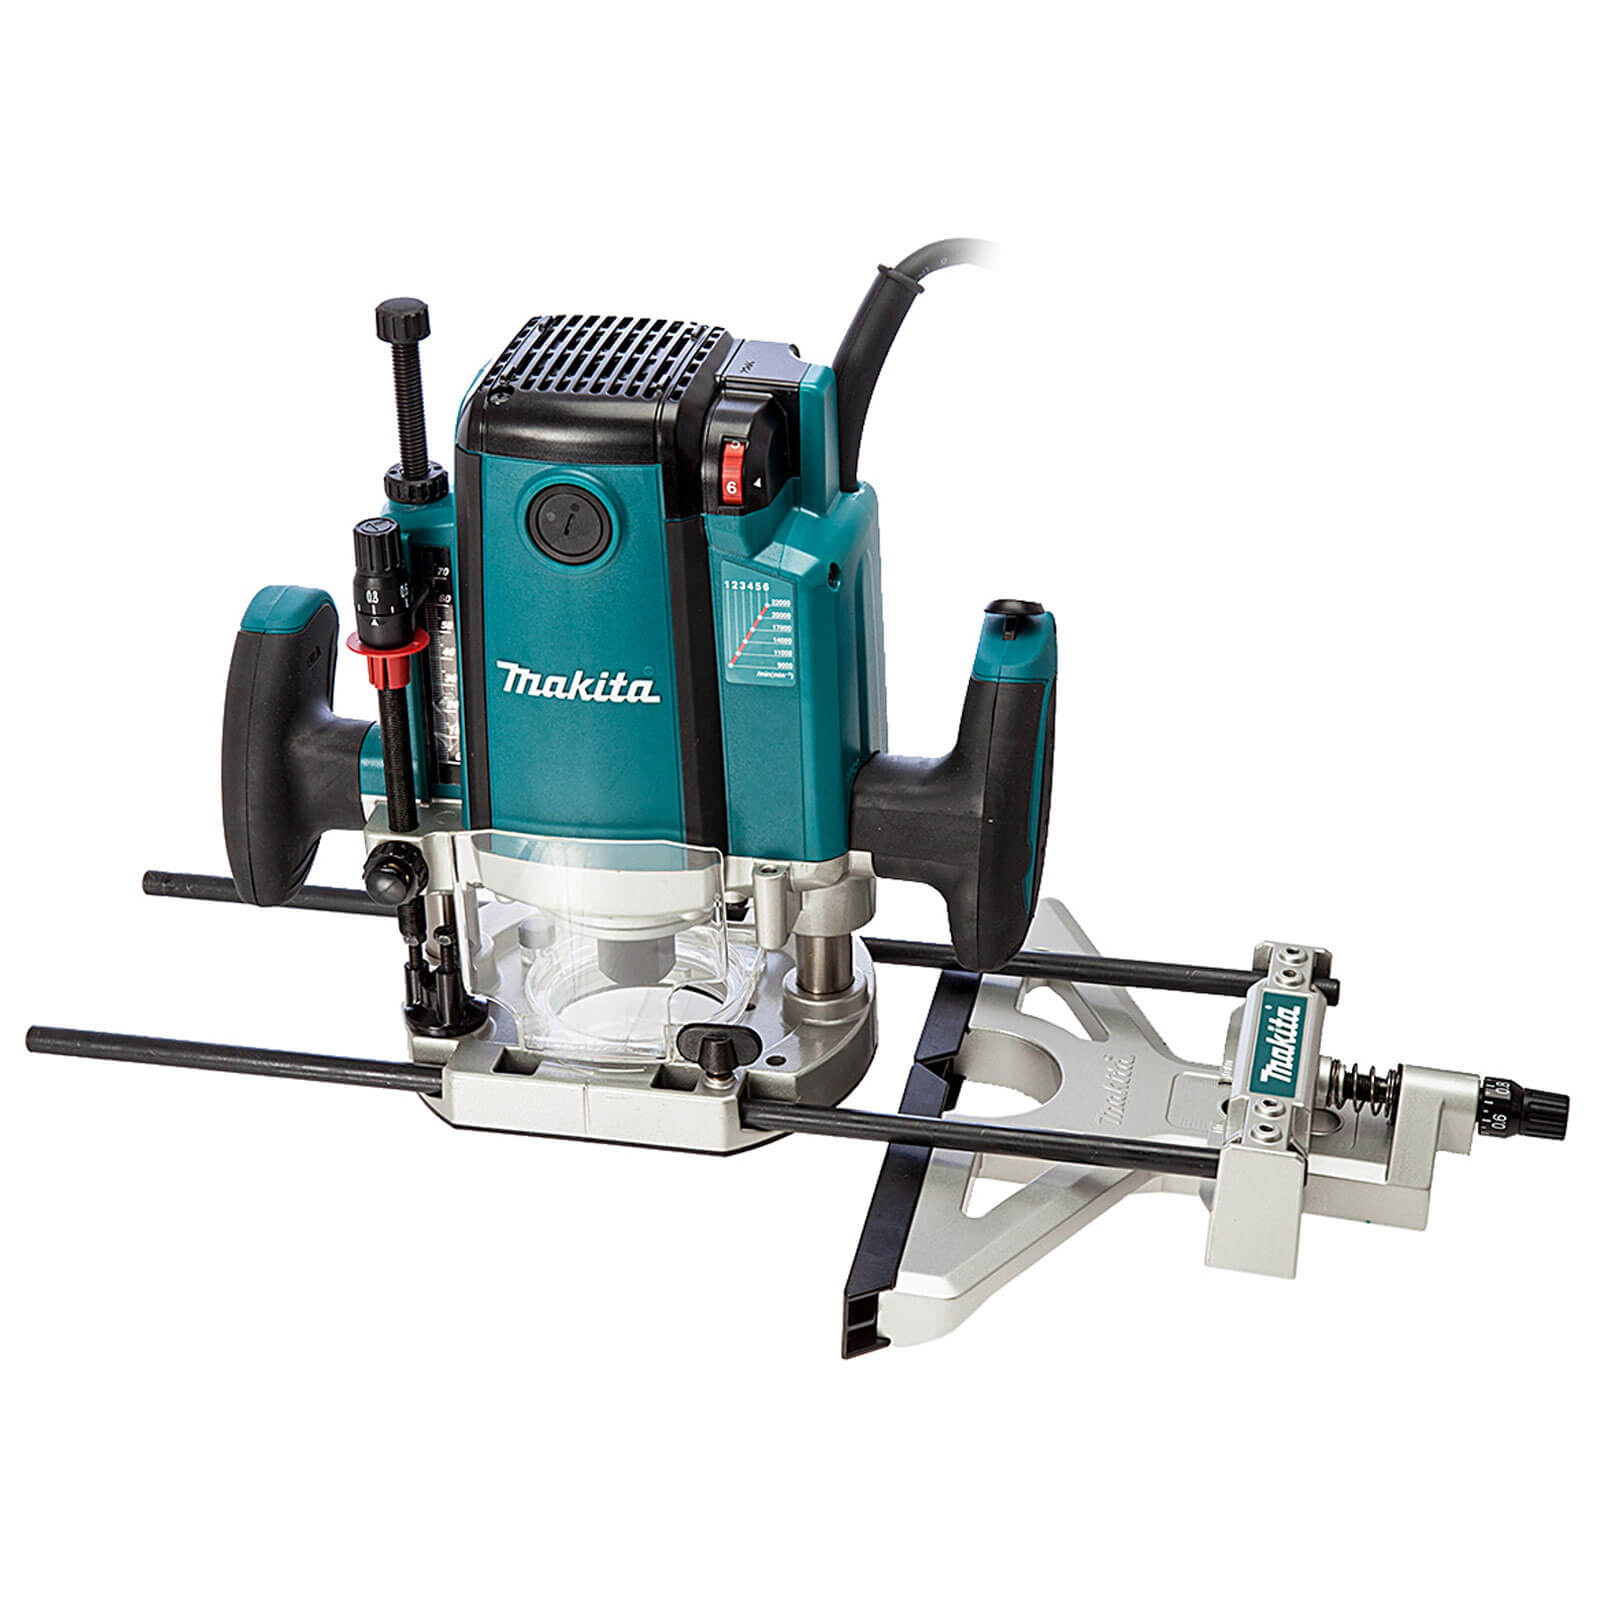 "Makita Router RP2301FCX 1/2"" plunge router 240 volt"